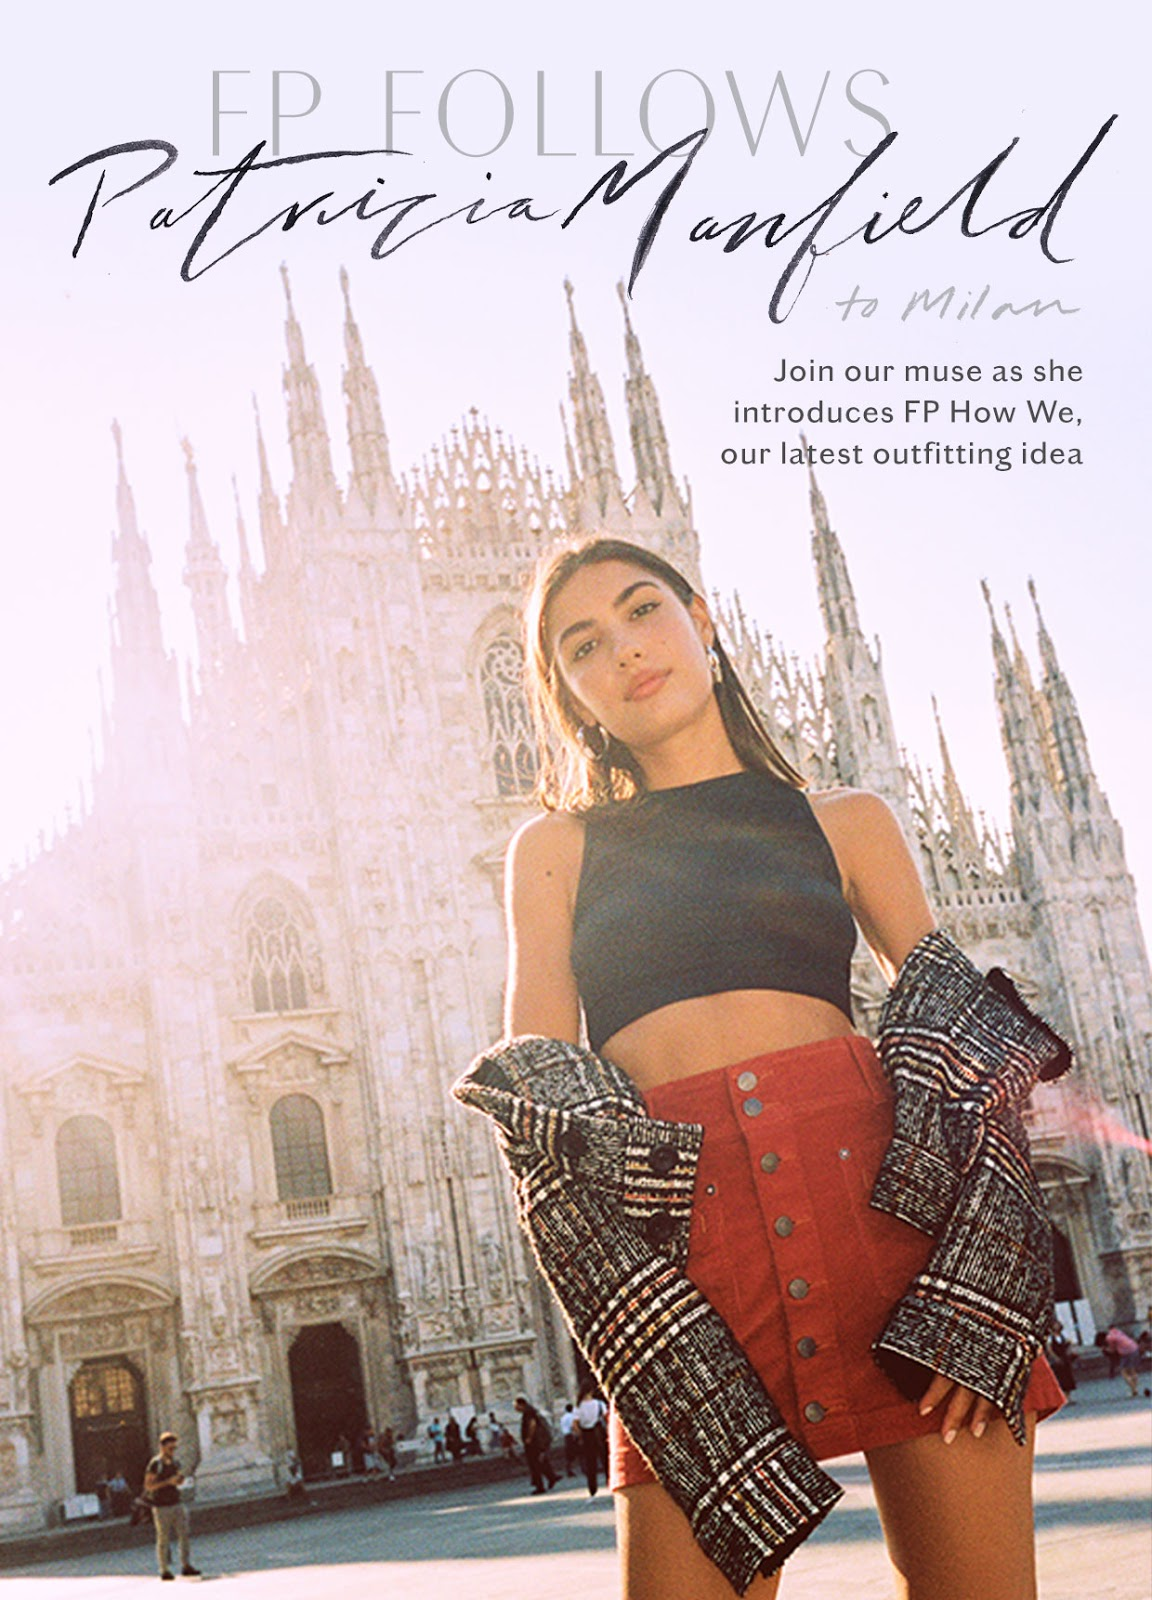 Free People x Patricia Manfield